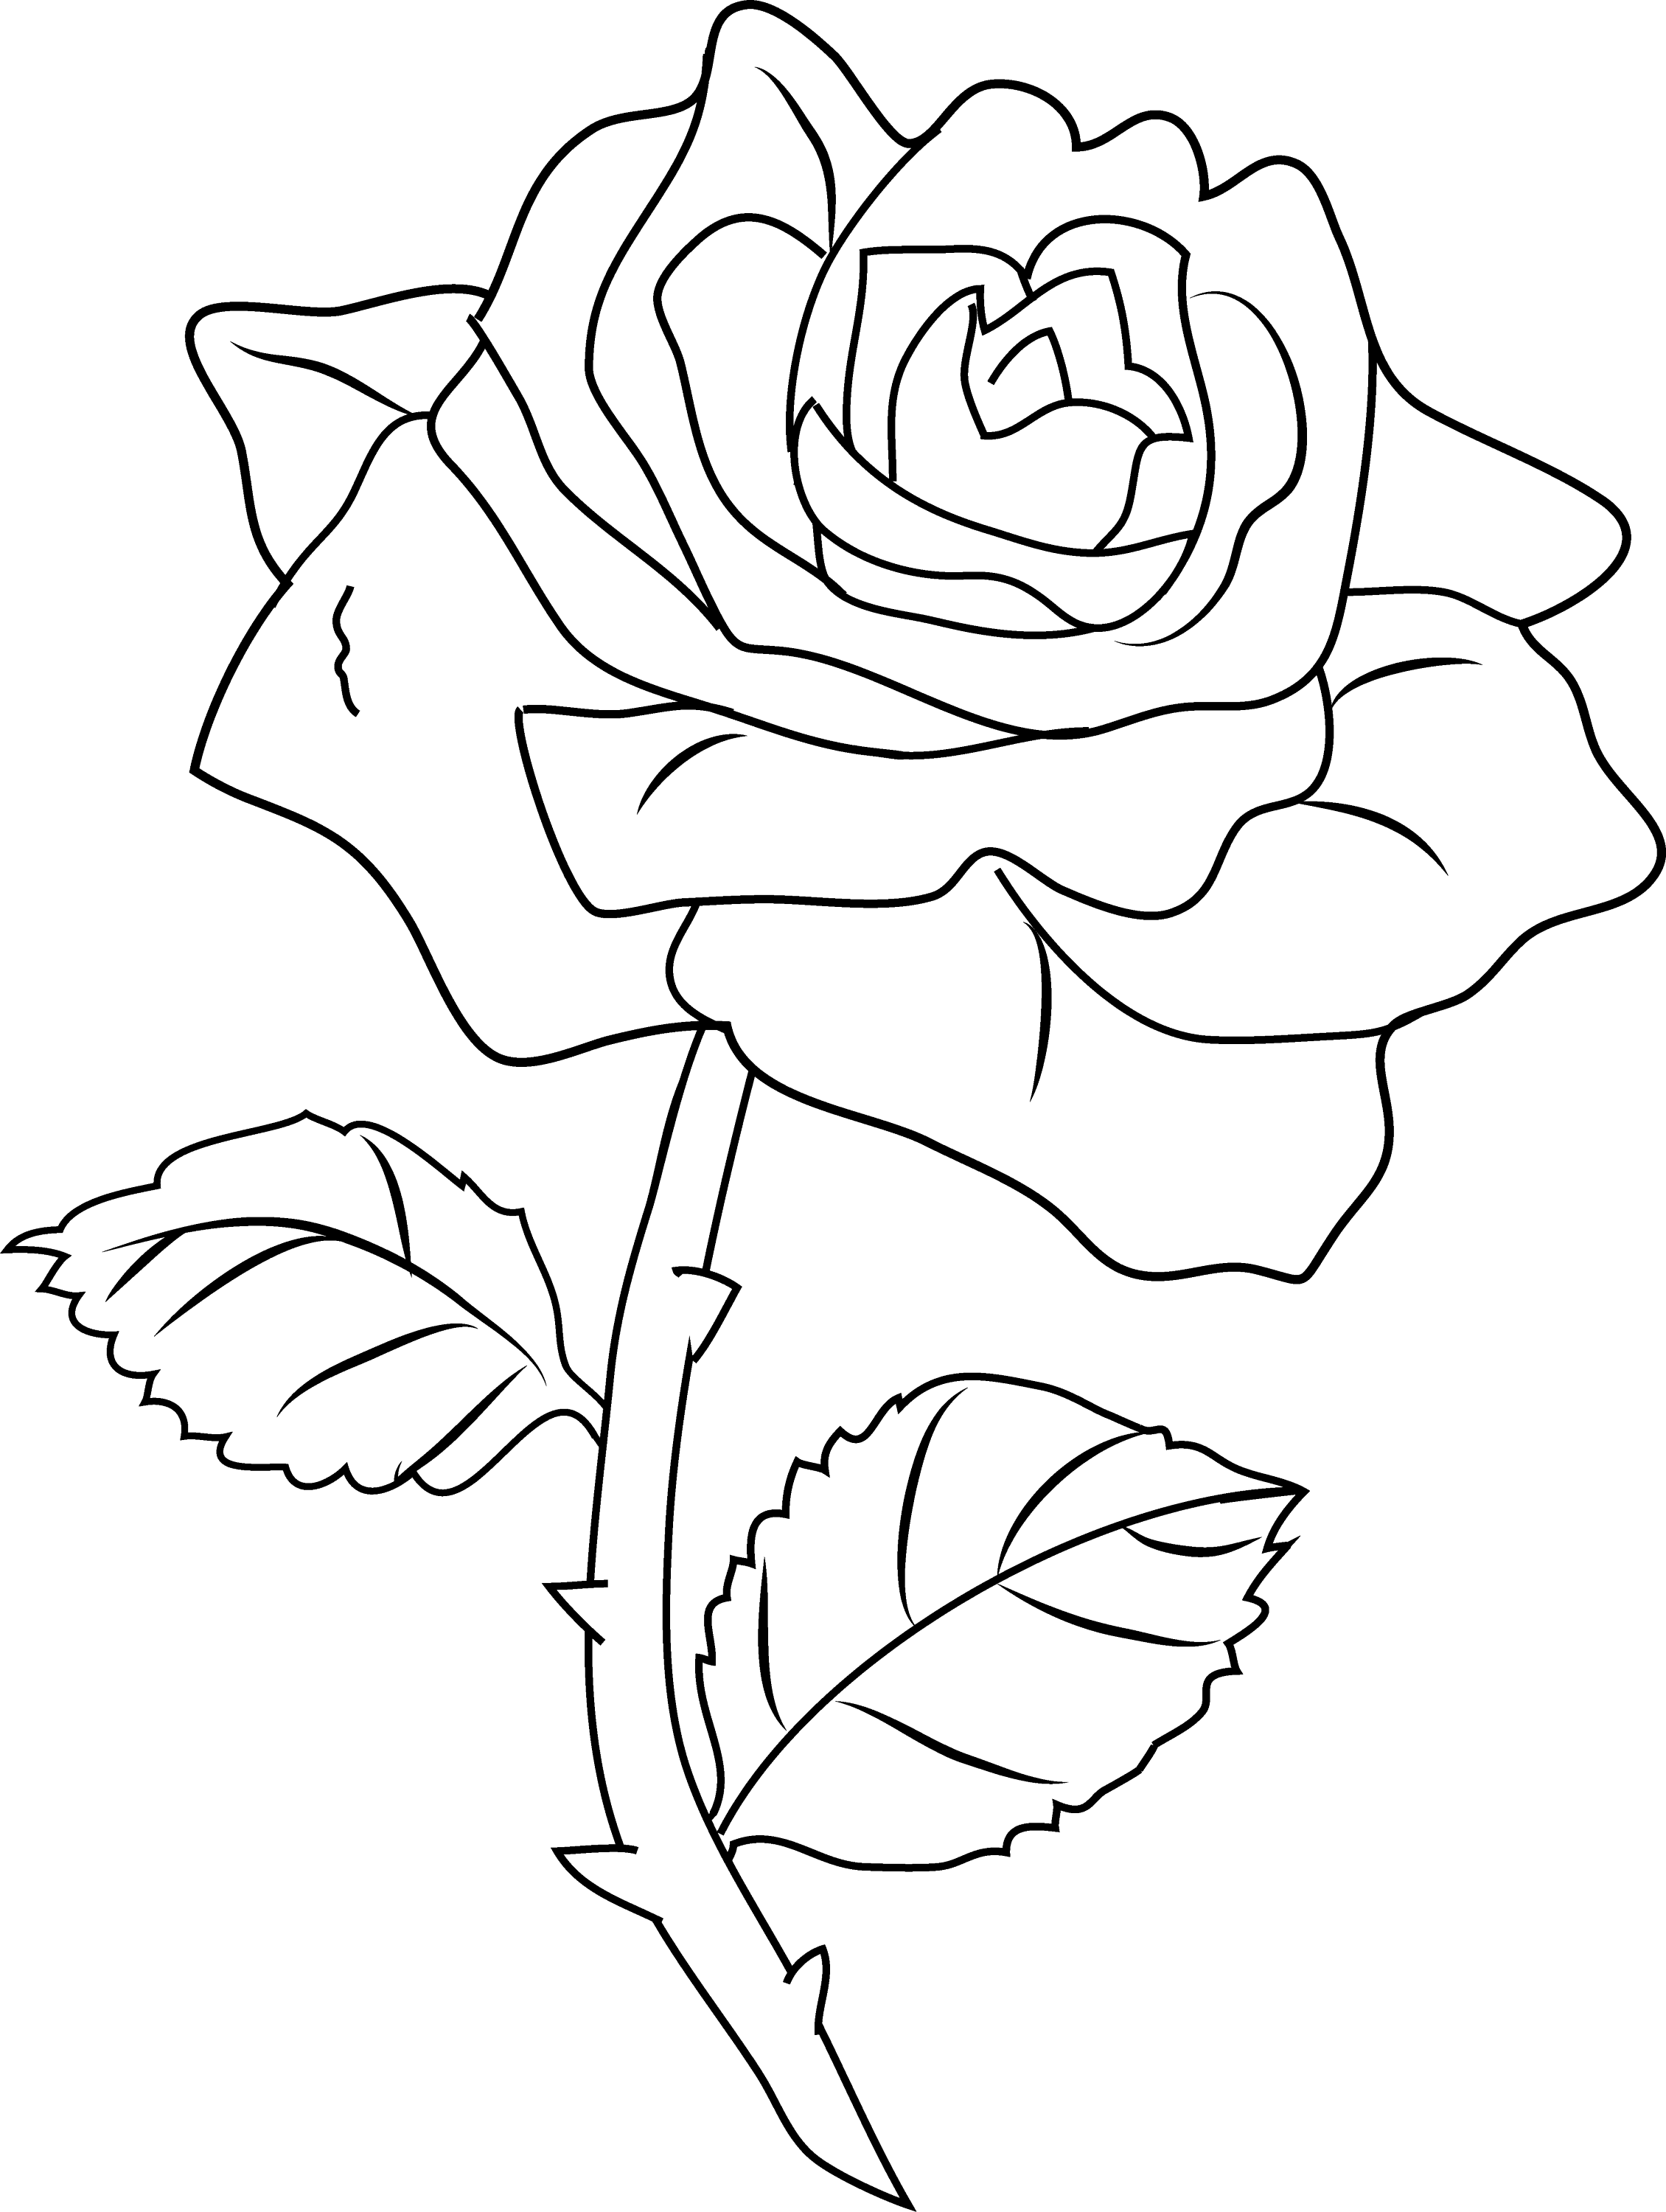 rose art coloring pages - photo#1